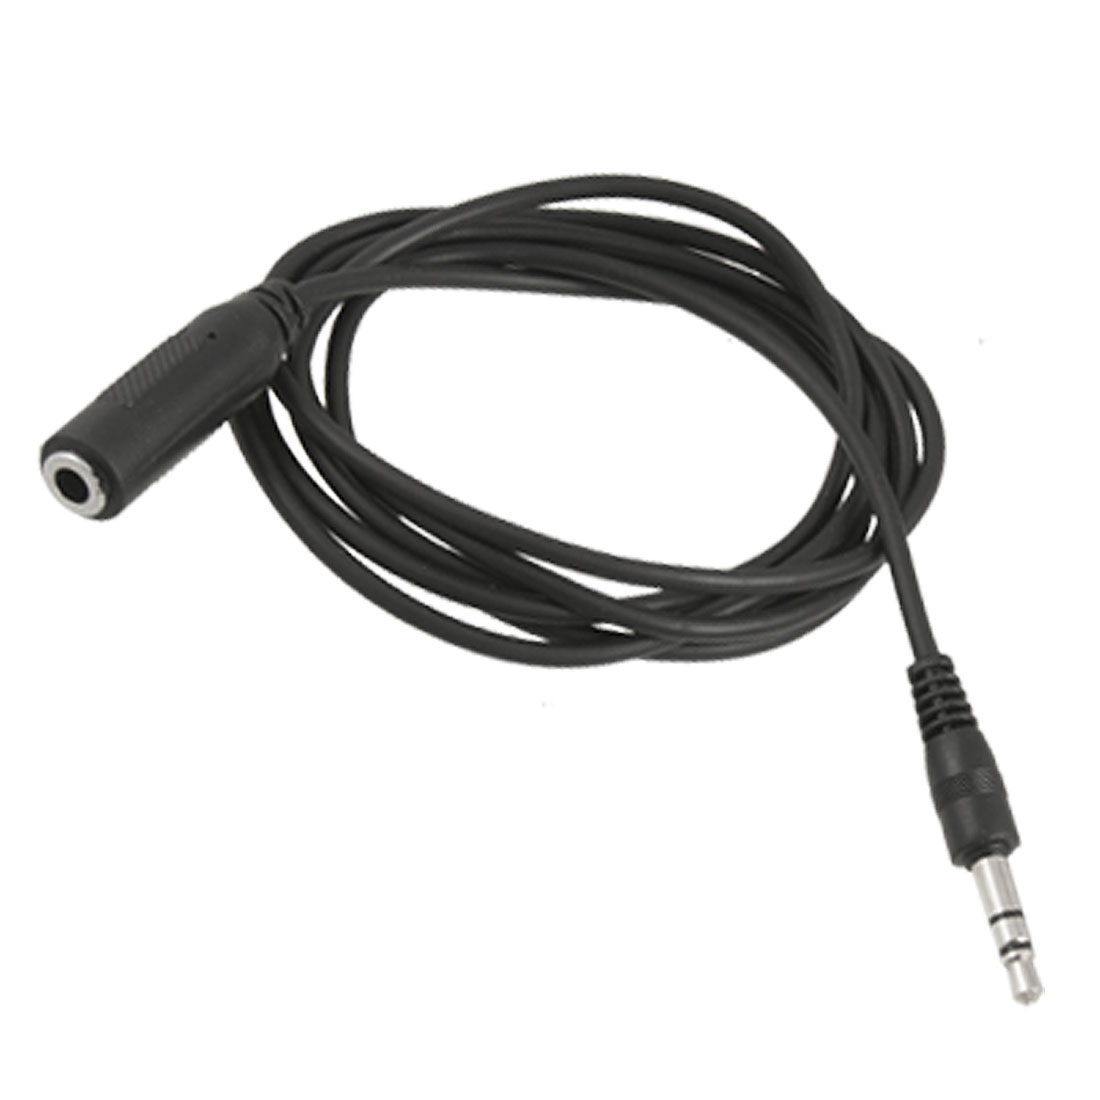 1.2M 3.5mm Male to Female Adapter Connector Audio Extend Cable Black